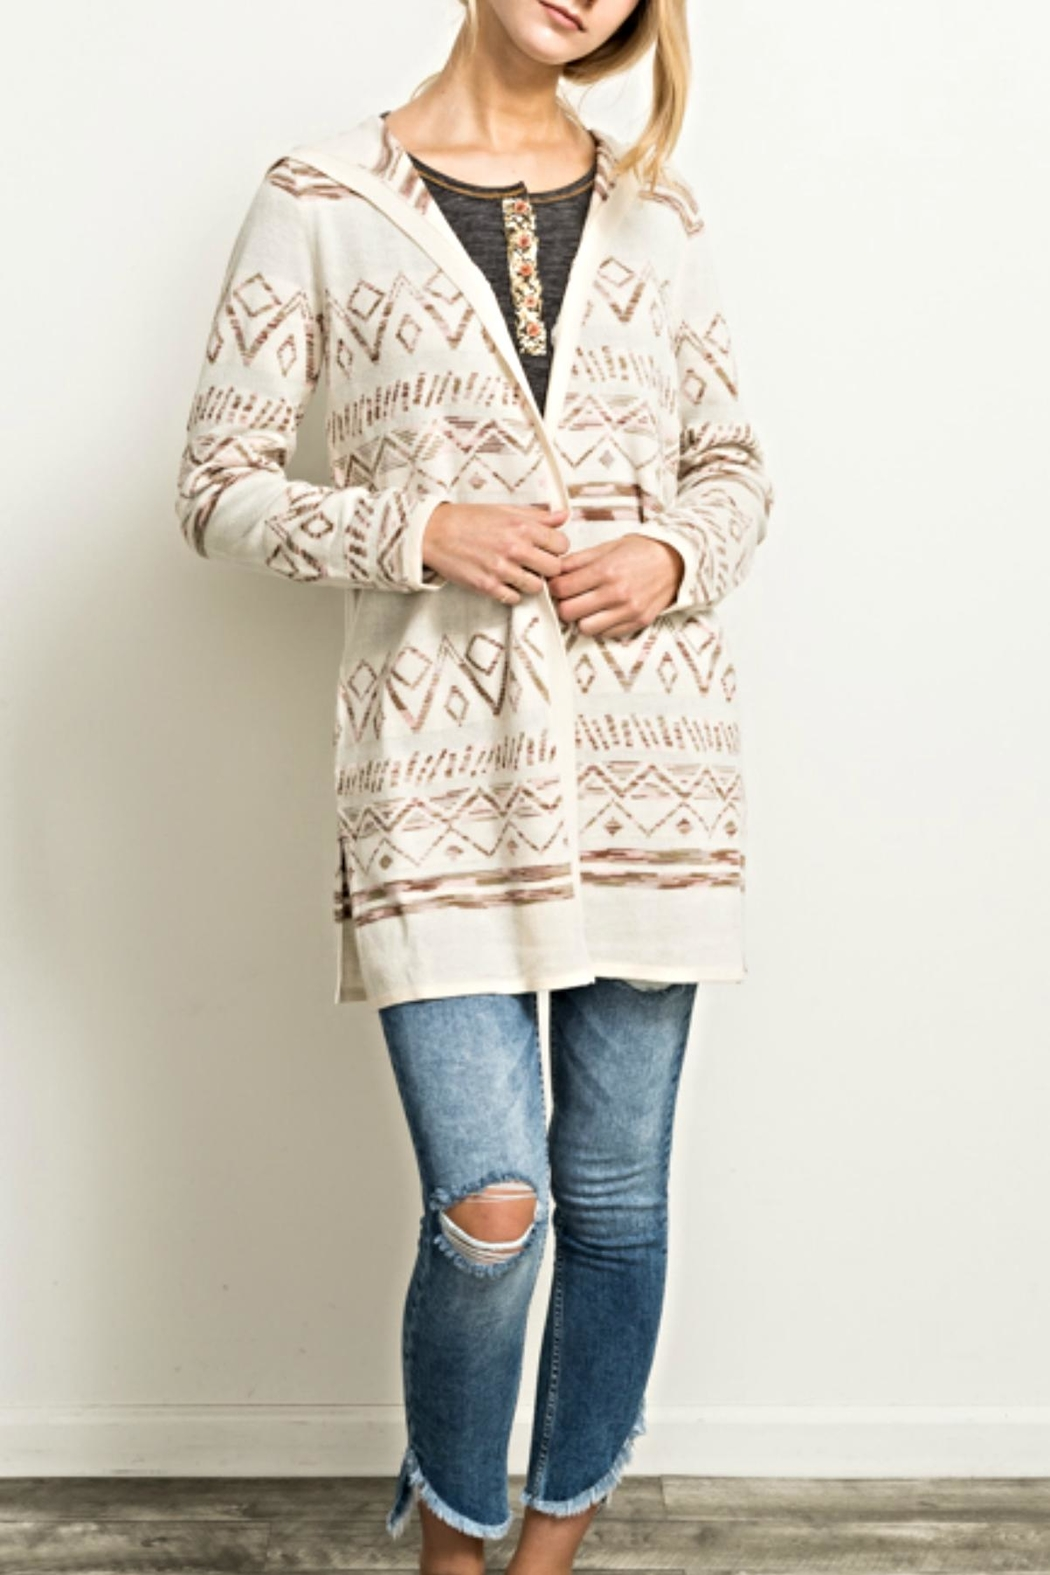 Hem & Thread Knit Pattern Cardigan from Chicago by What She Wants ...